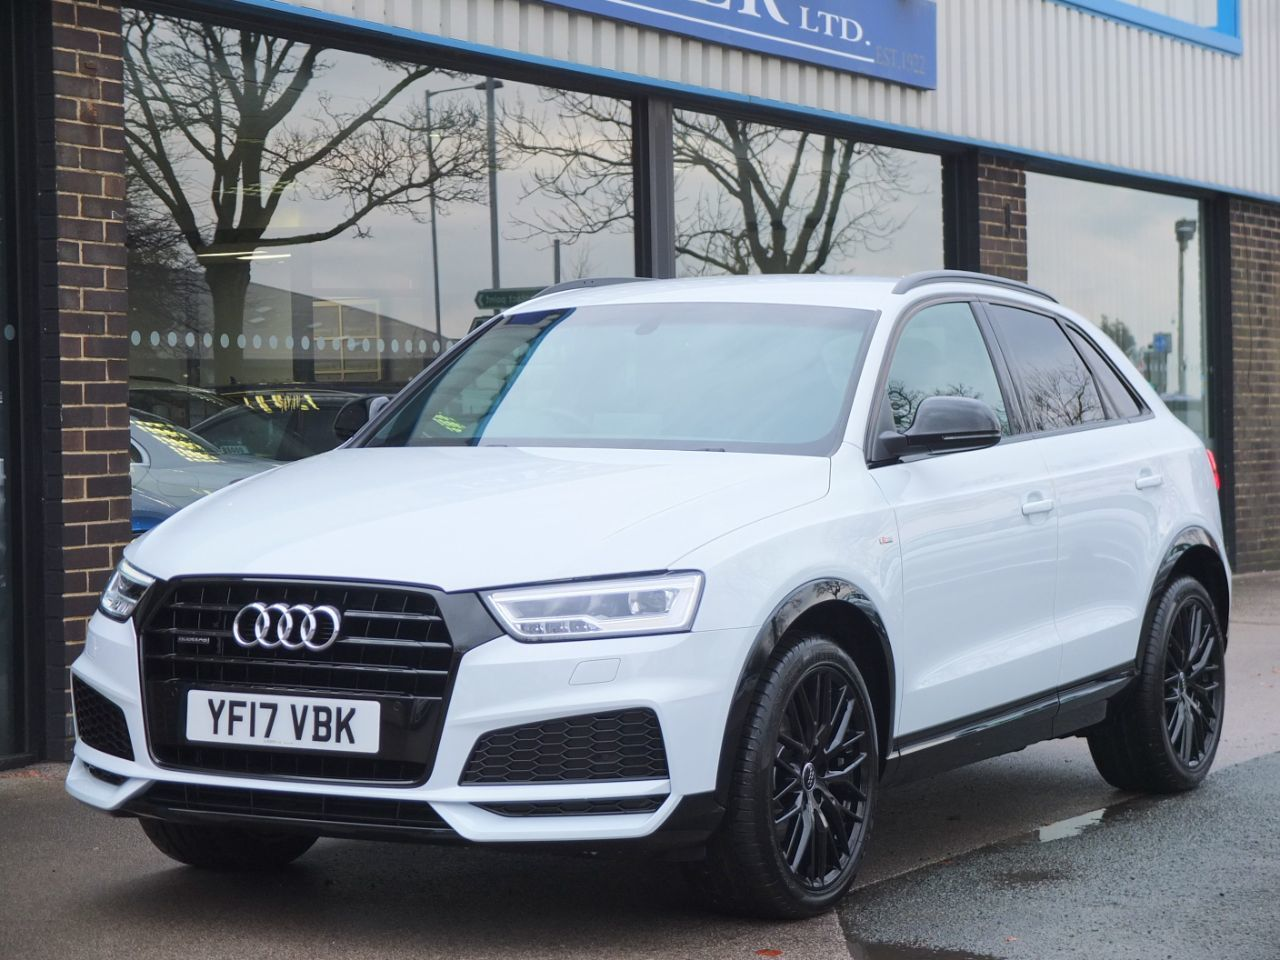 Audi Q3 2.0 TDI quattro S Line Black Edition S tronic 150ps Estate Diesel Glacier White MetallicAudi Q3 2.0 TDI quattro S Line Black Edition S tronic 150ps Estate Diesel Glacier White Metallic at fa Roper Ltd Bradford